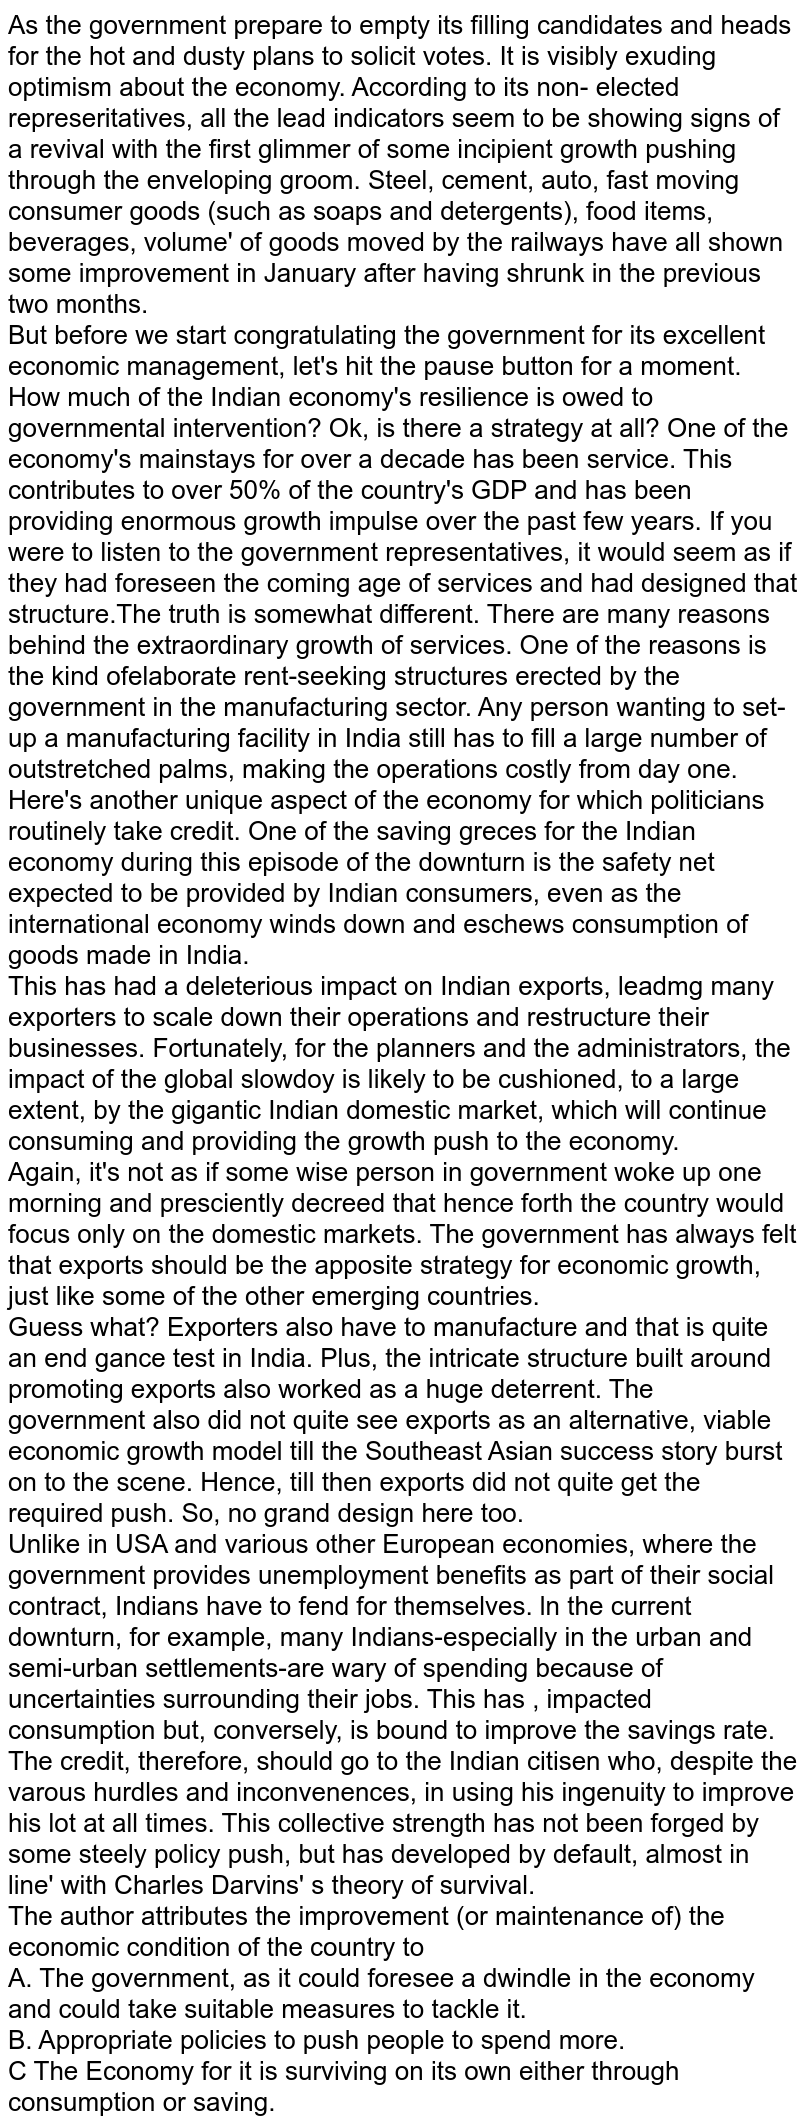 As the government prepare to empty its filling candidates and heads for the hot and dusty plans to solicit votes. It is visibly exuding optimism about the economy. According to its non- elected represeritatives, all the lead indicators seem to be showing signs of a revival with the first glimmer of some incipient growth pushing through the enveloping groom. Steel, cement, auto, fast moving consumer goods (such as soaps and detergents), food items, beverages, volume' of goods moved by the railways have all shown some improvement in January after having shrunk in the previous two months. <br> But before we start congratulating the government for its excellent economic management, let's hit the pause button for a moment. How much of the Indian economy's resilience is owed to governmental intervention? Ok, is there a strategy at all? One of the economy's mainstays for over a decade has been service. This contributes to over 50% of the country's GDP and has been providing enormous growth impulse over the past few years. If you were to listen to the government representatives, it would seem as if they had foreseen the coming age of services and had designed that structure.The truth is somewhat different. There are many reasons behind the extraordinary growth of services. One of the reasons is the kind ofelaborate rent-seeking structures erected by the government in the manufacturing sector. Any person wanting to set-up a manufacturing facility in India still has to fill a large number of outstretched palms, making the operations costly from day one. <br> Here's another unique aspect of the economy for which politicians routinely take credit. One of the saving greces for the Indian economy during this episode of the downturn is the safety net expected to be provided by Indian consumers, even as the international economy winds down and eschews consumption of goods made in India. <br> This has had a deleterious impact on Indian exports, leadmg many exporters to scale down th